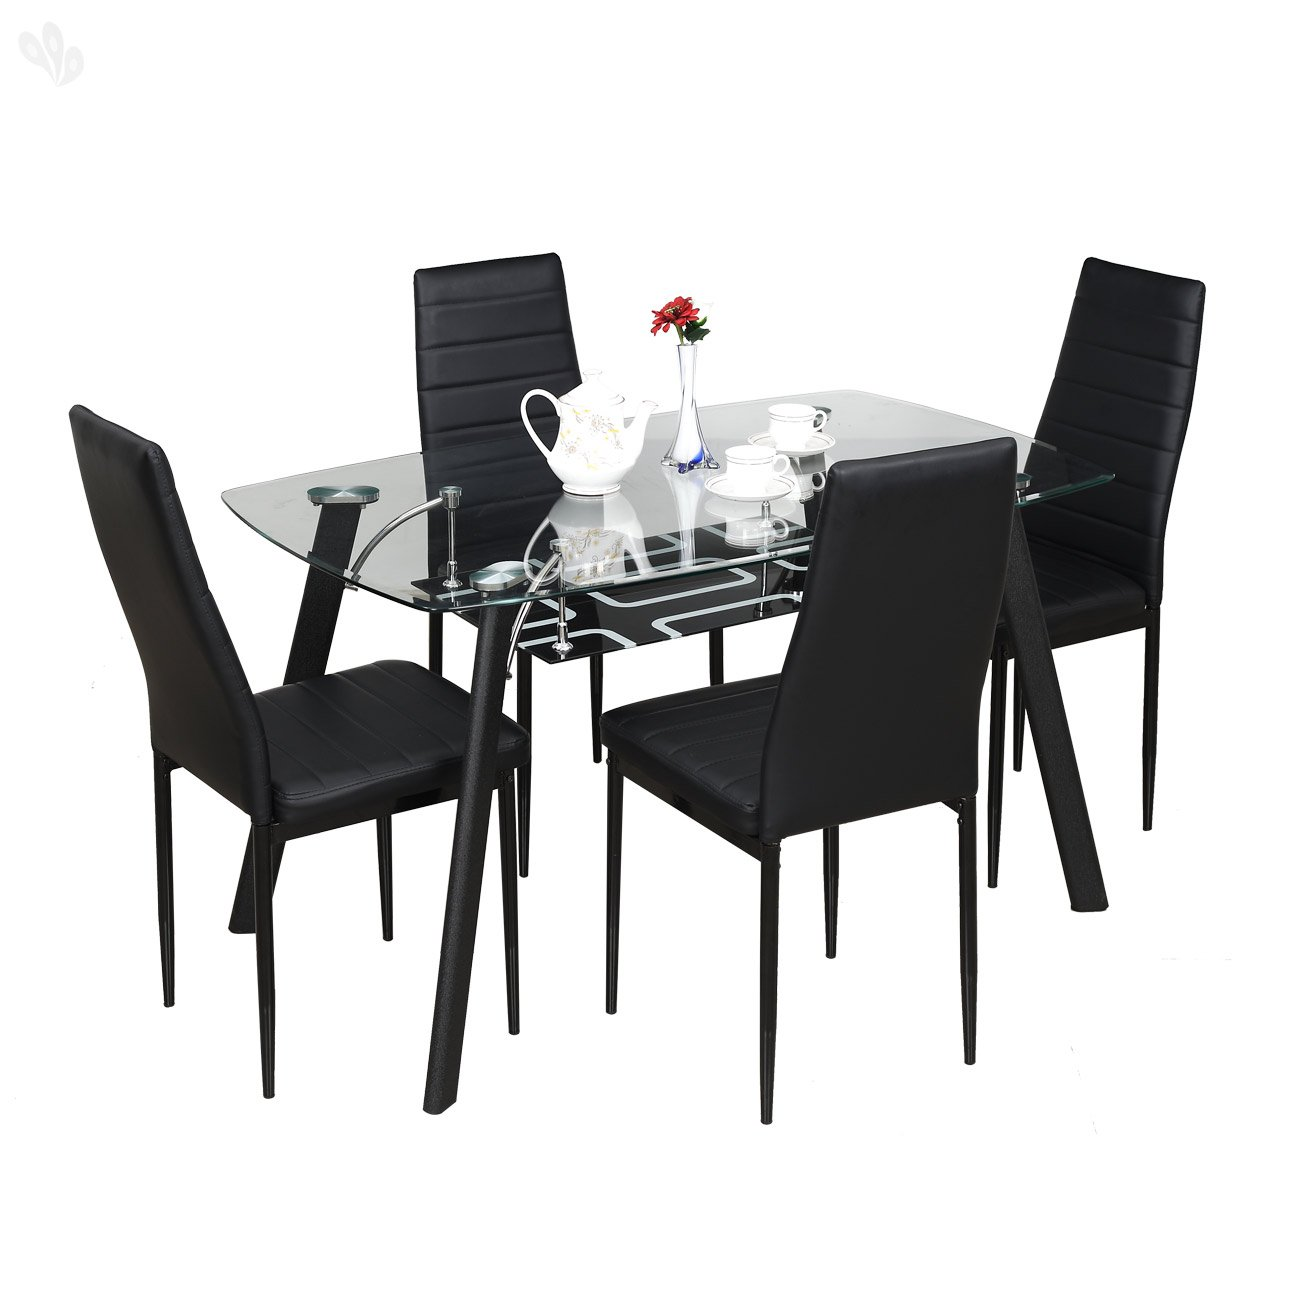 Royal oak milan four seater dining table set black for Best dining tables 2016